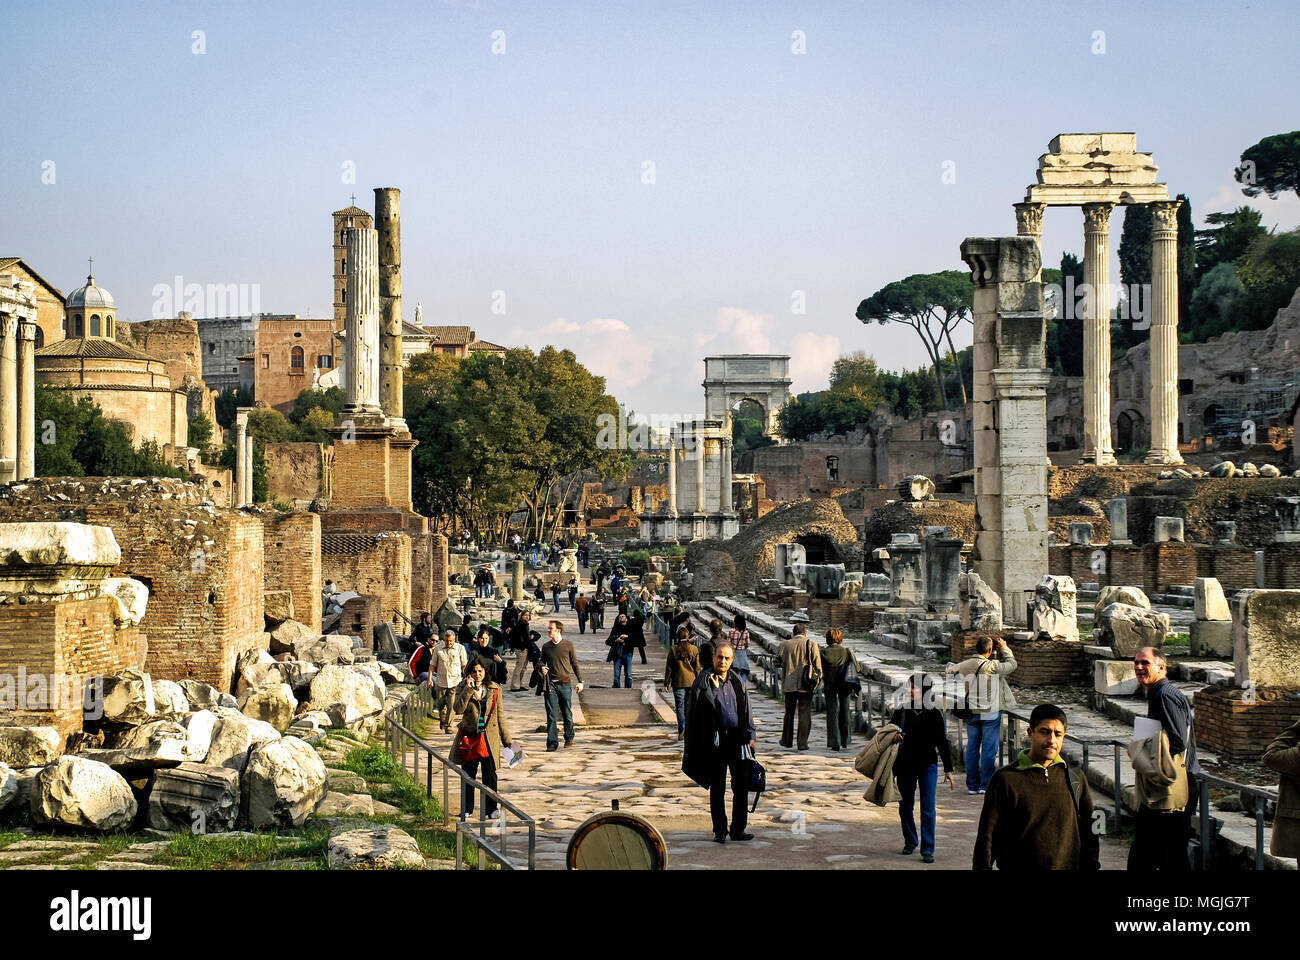 Tourists and business people stroll through the Roman Forum. You can see the Arch of Titus and the Temple of Castor on the right. Rome, Italy - Stock Image